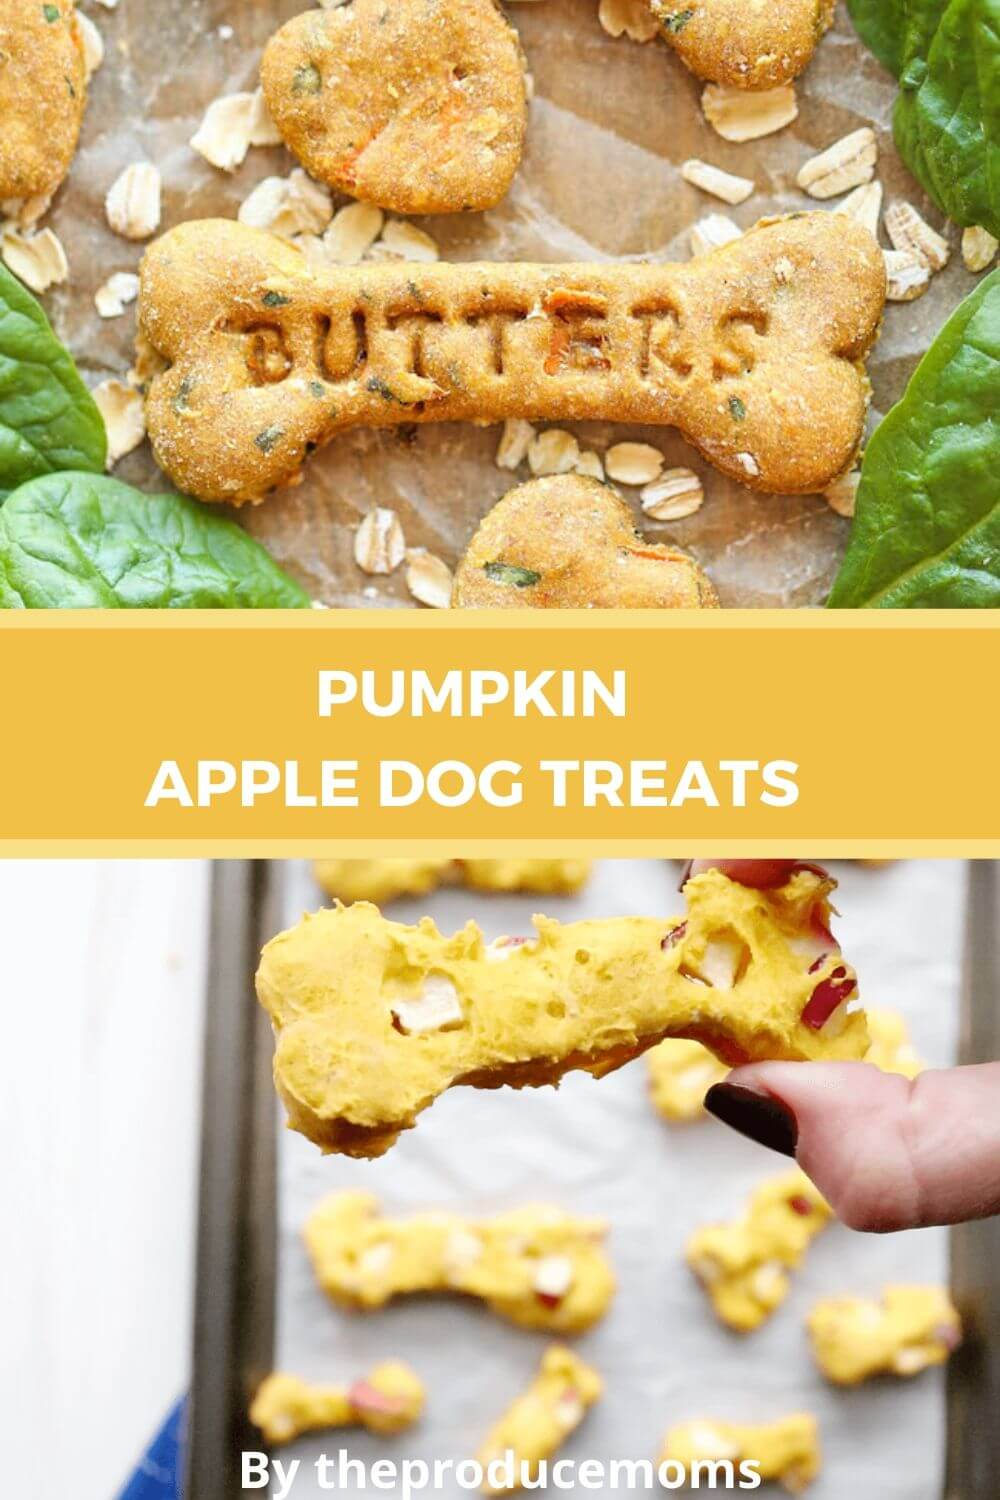 Pumpkin Apple Dog Treats